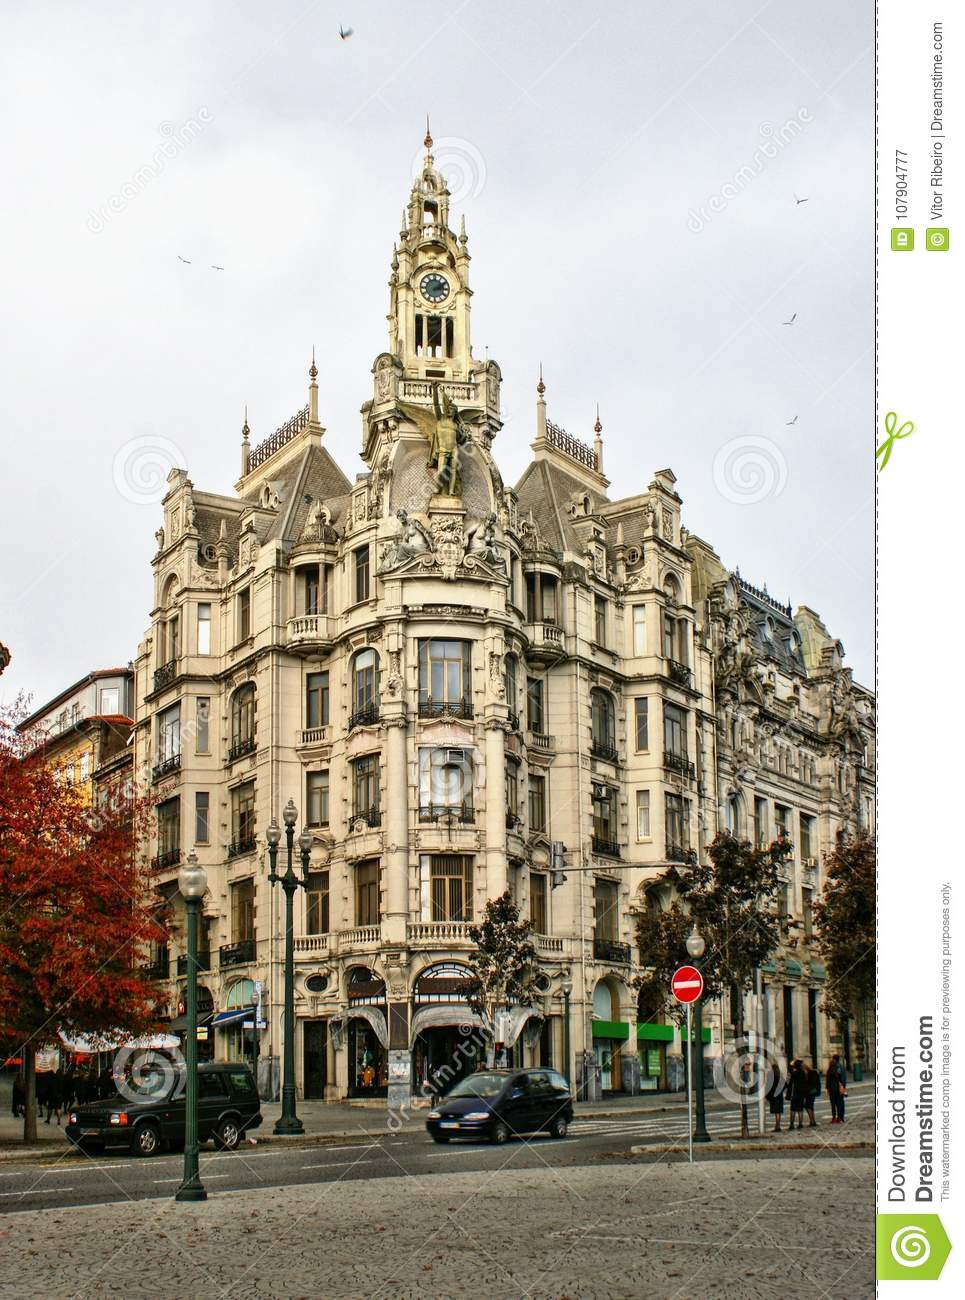 Building in downtown of Oporto